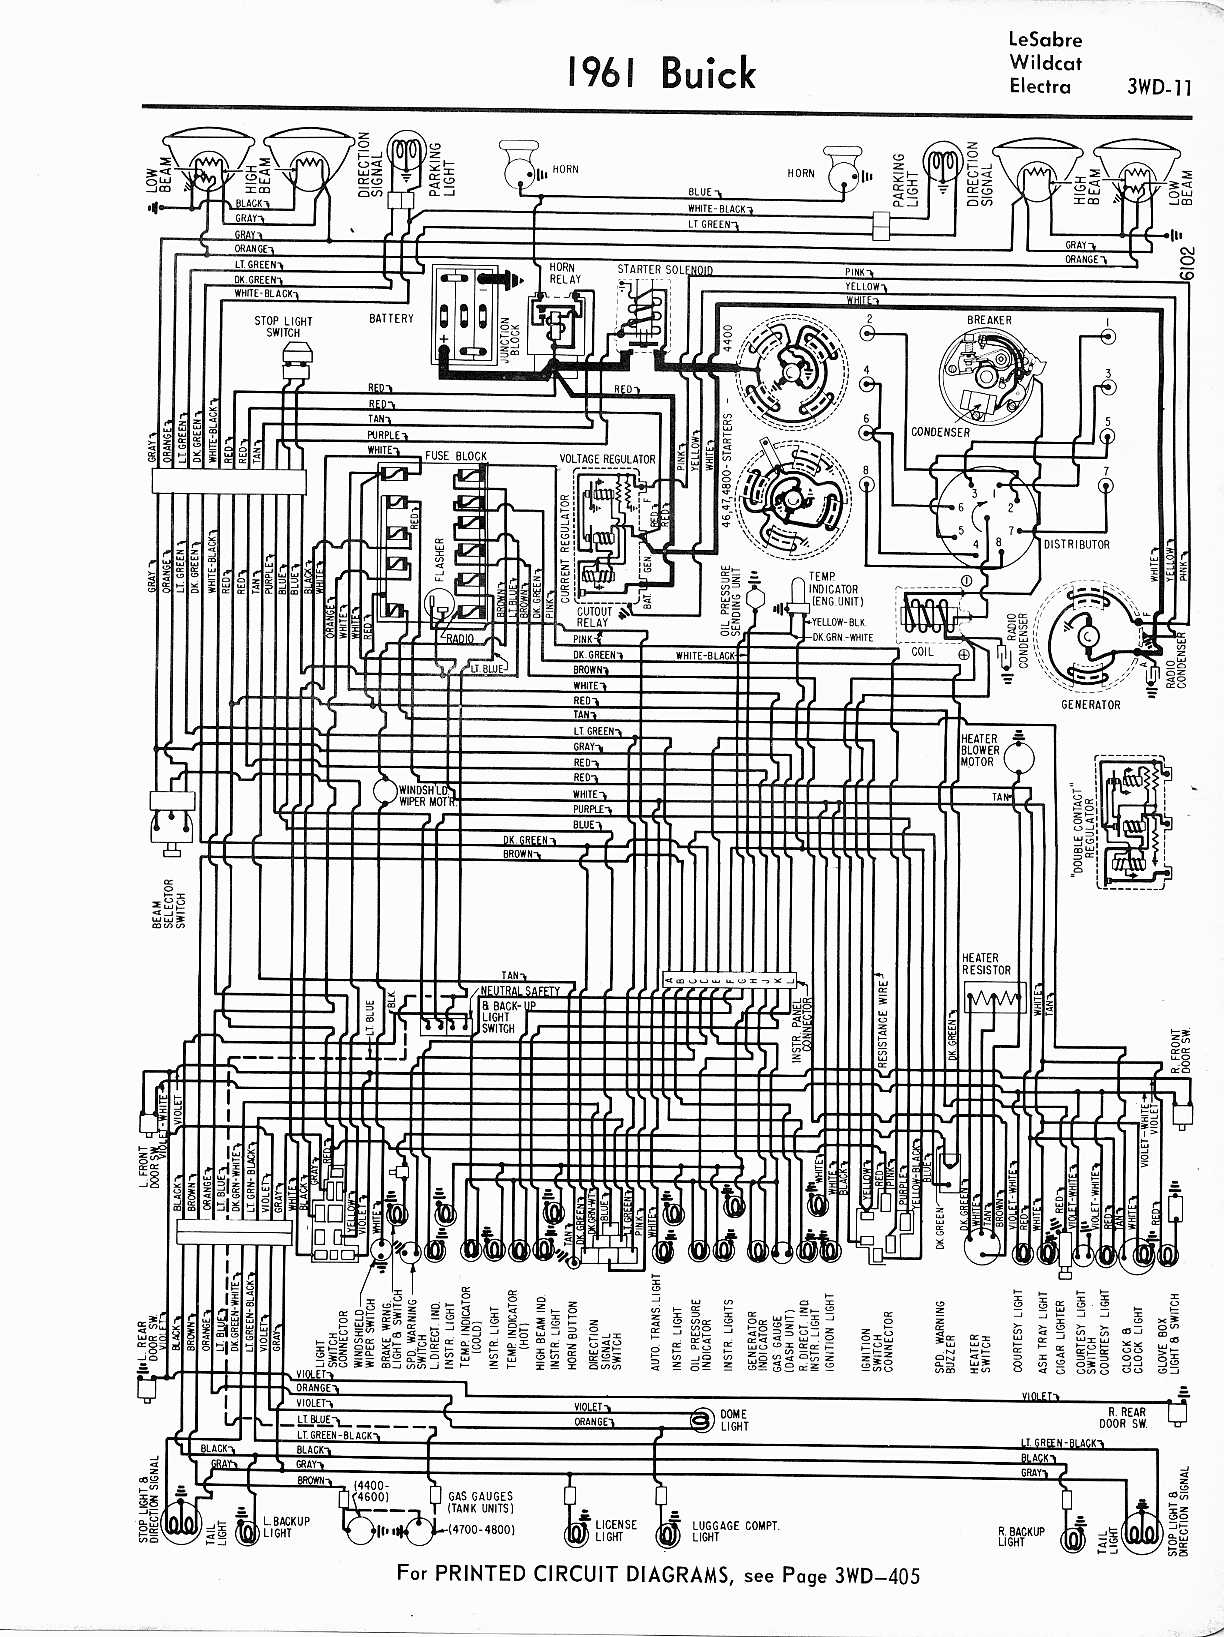 MWireBuic65_3WD 011 buick wiring diagrams 1957 1965 1999 buick century wiring diagram at nearapp.co